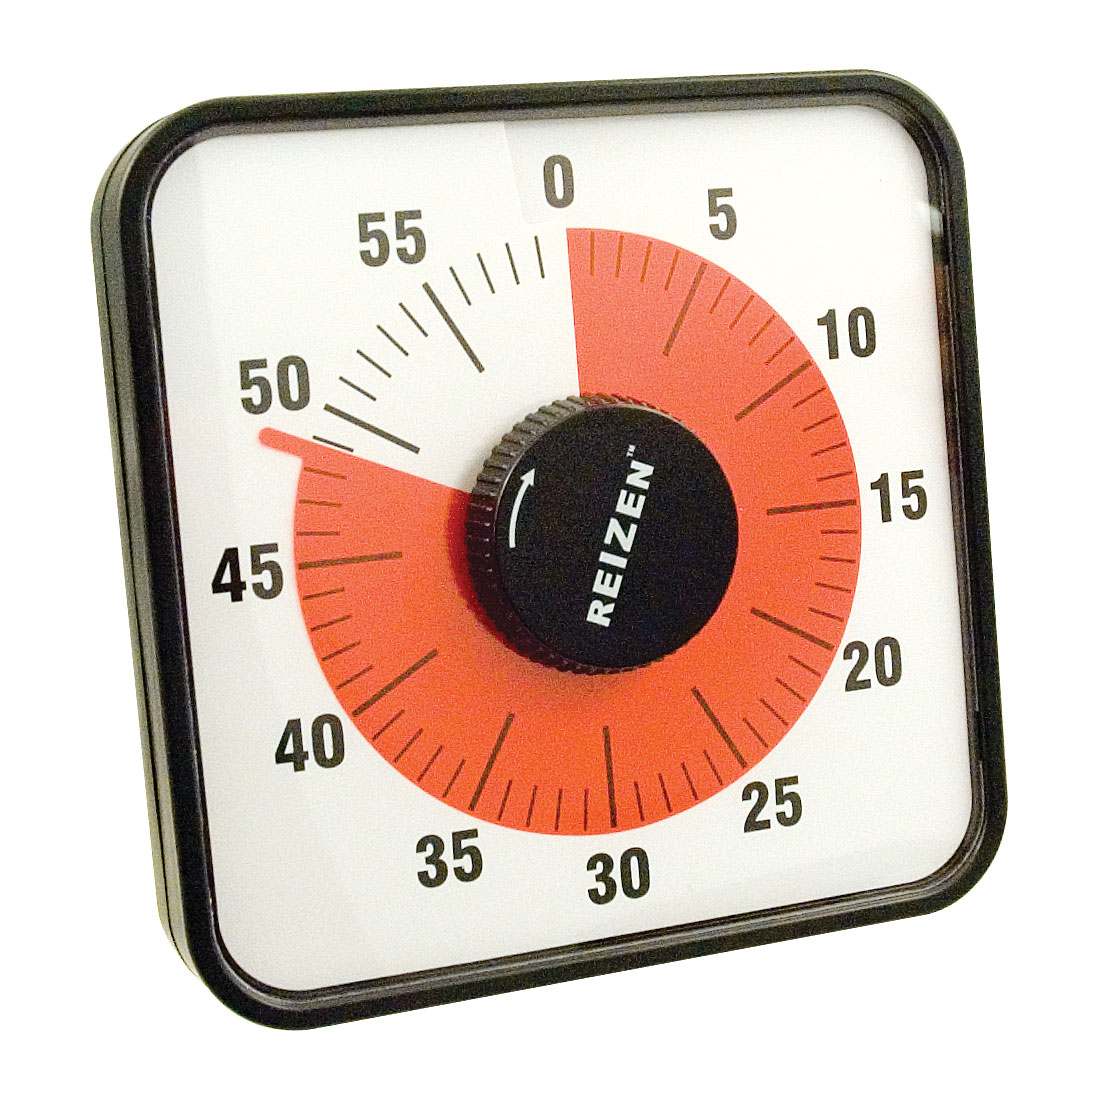 The Time Timer and Tactile Numbers Price: $39.95